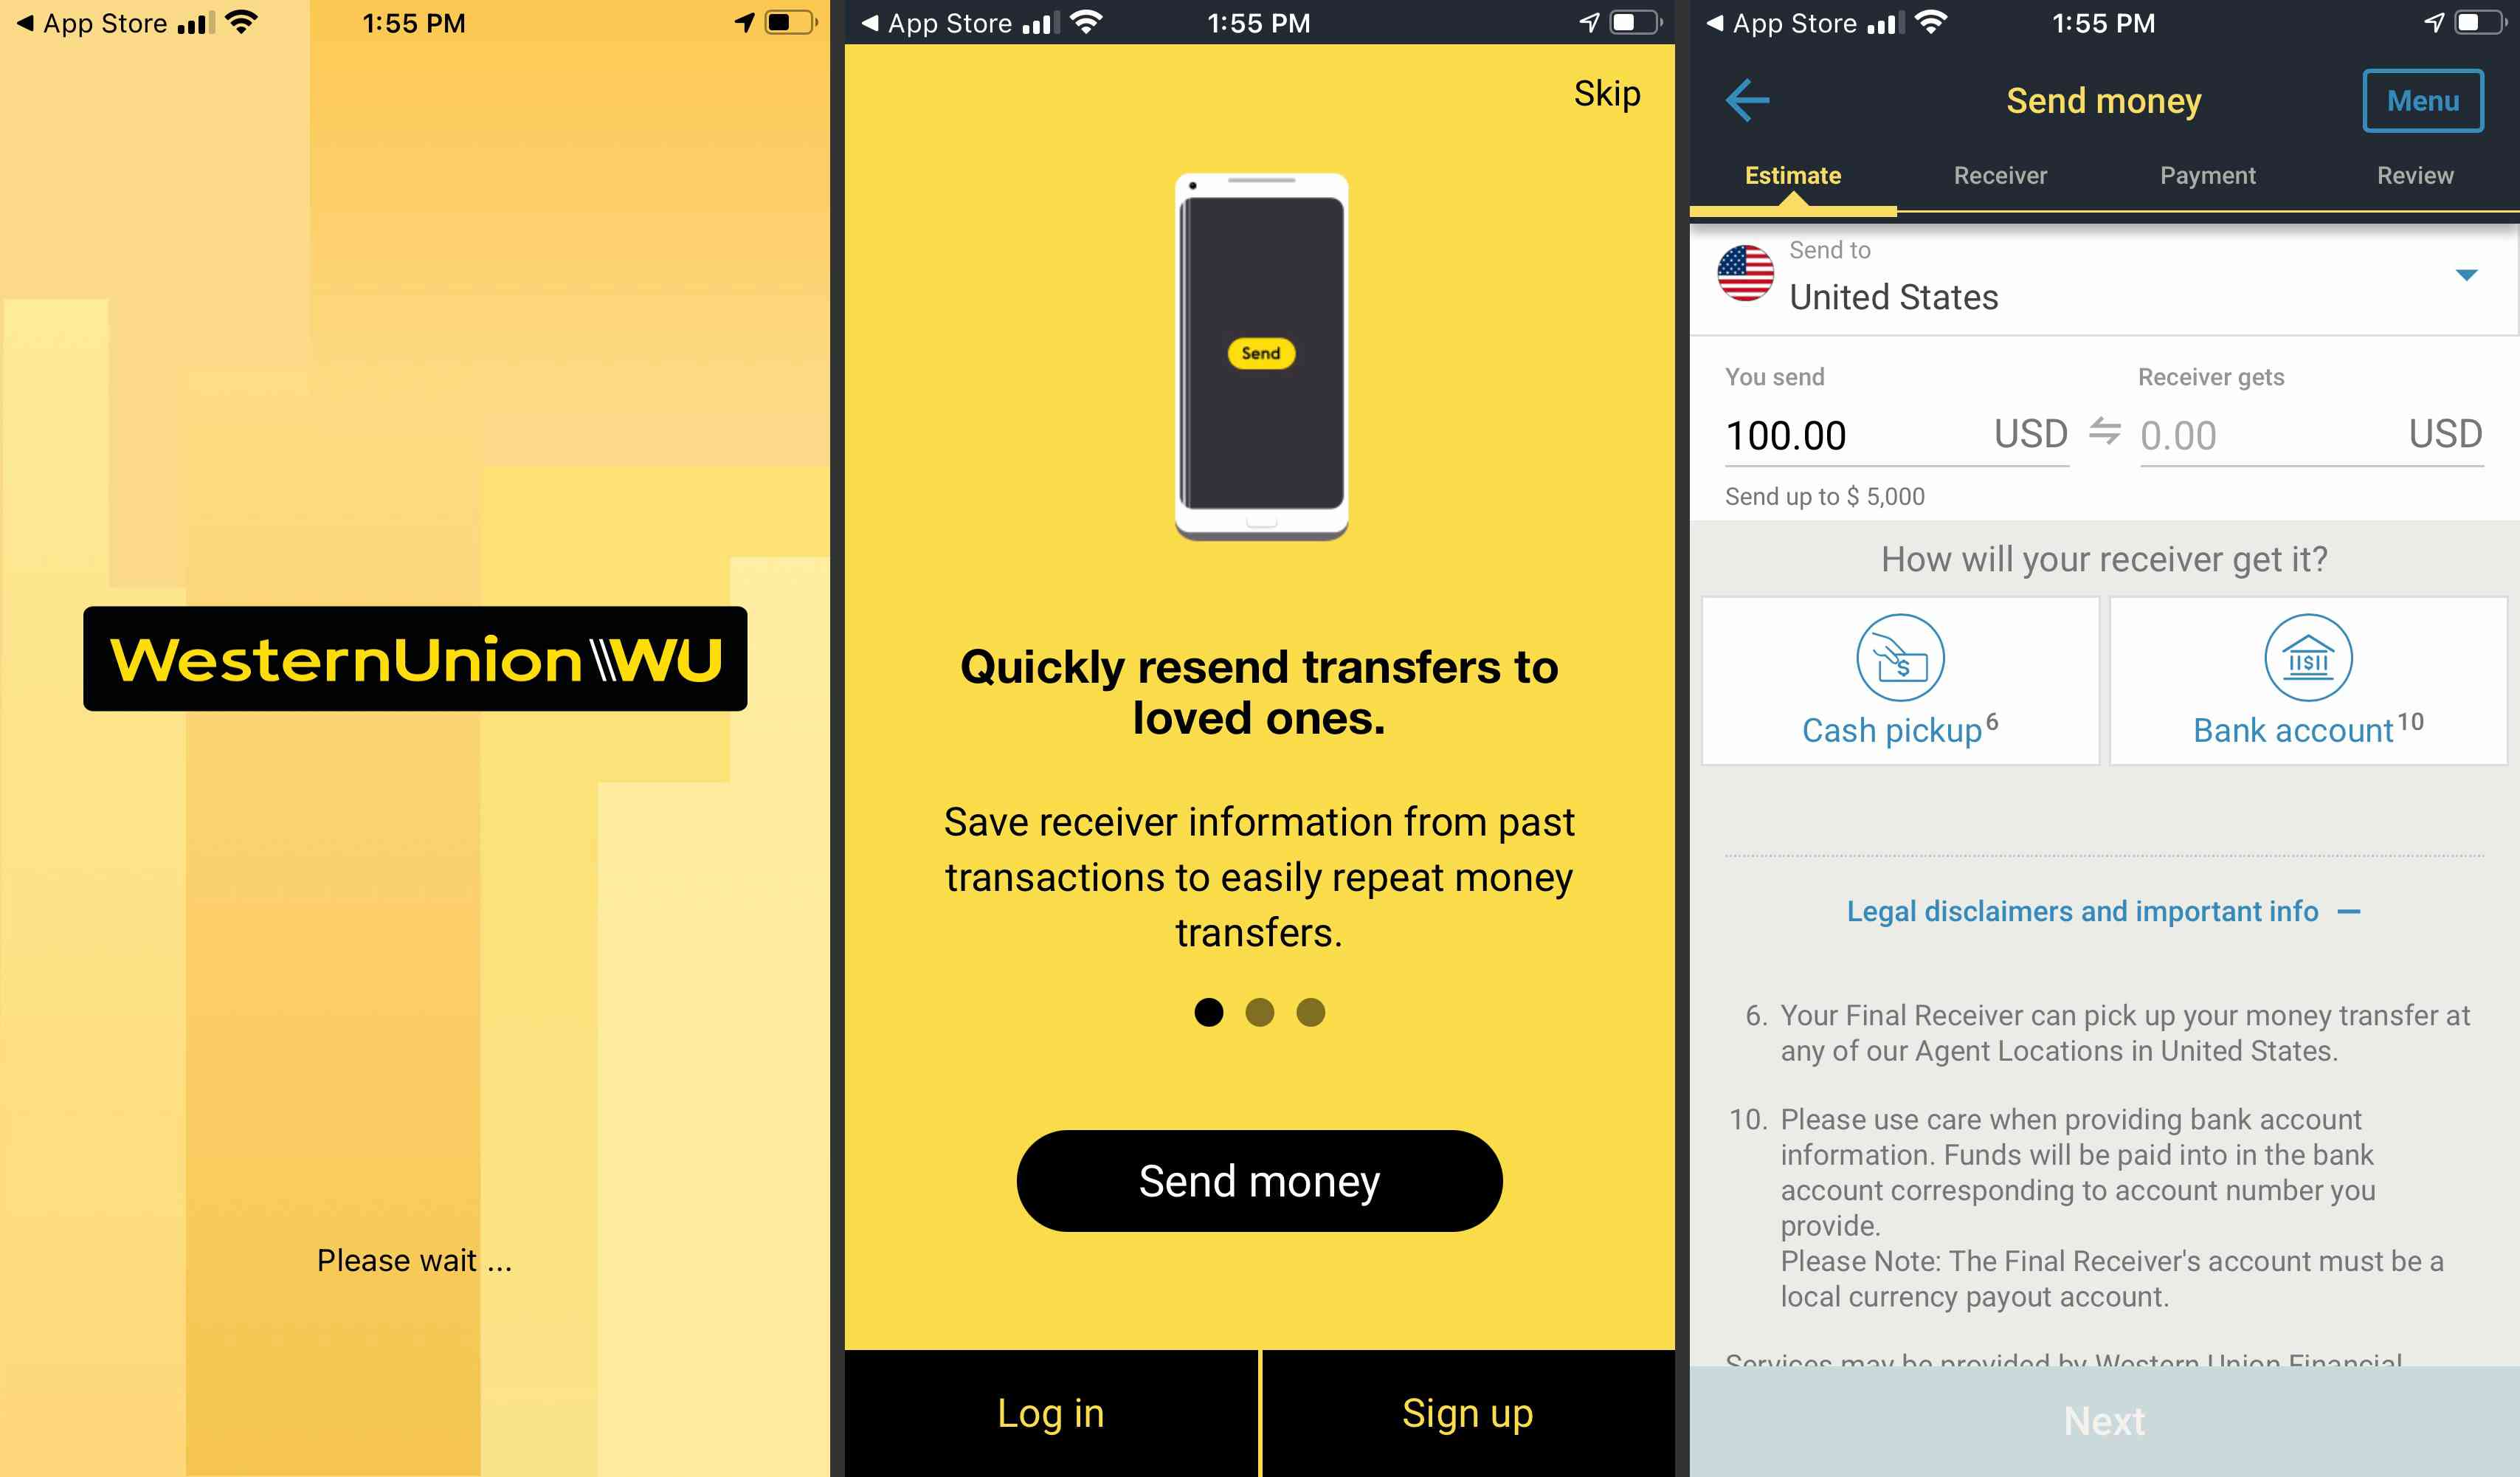 Western Union app info and transfer screens